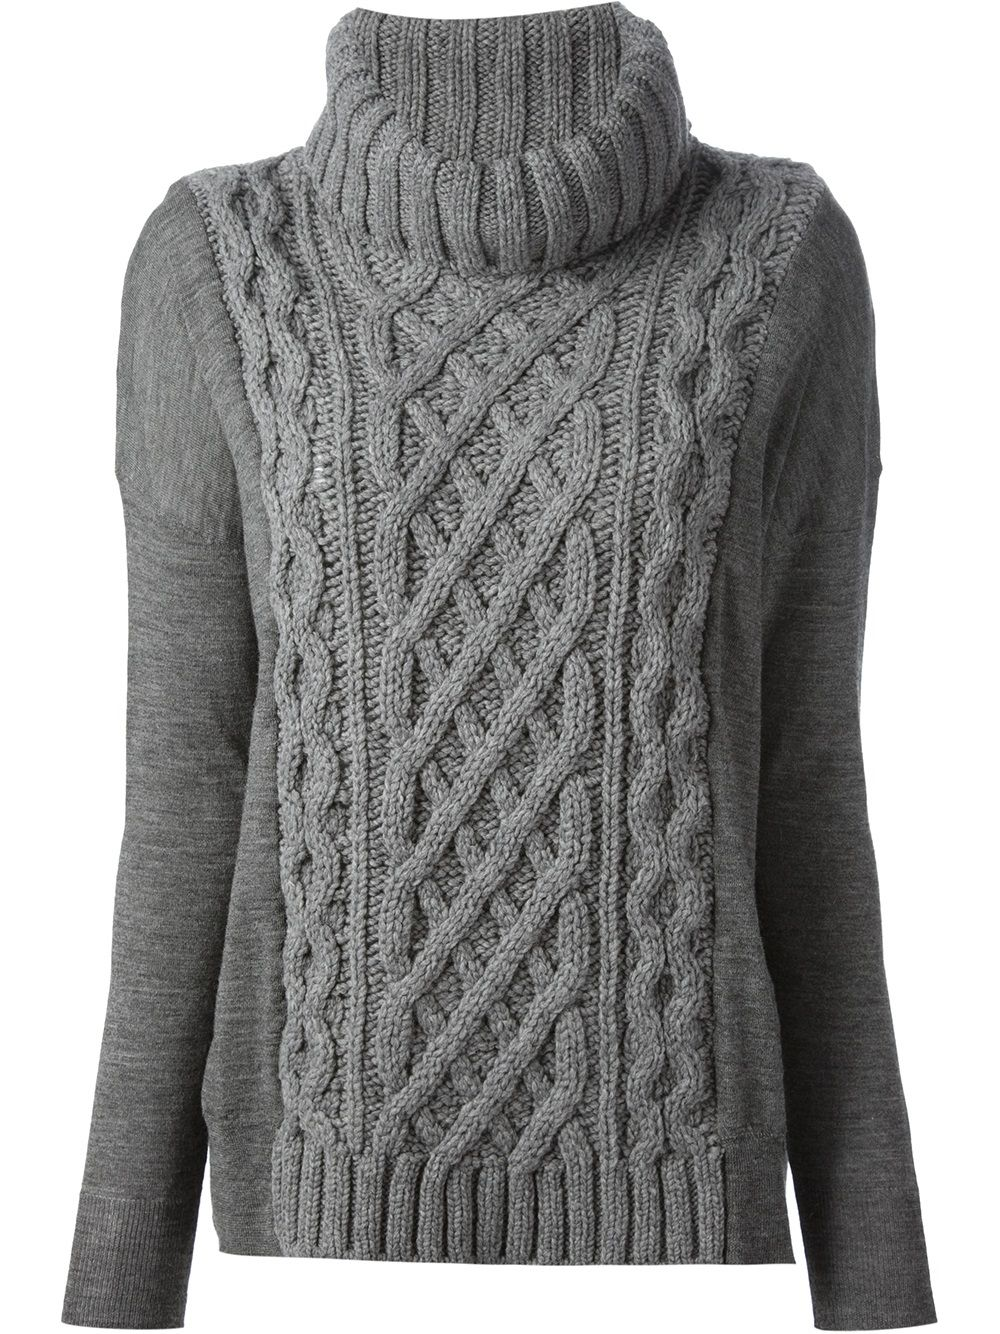 coastweberahaus-gray-cable-knit-sweater-product-1-14250581-0 ...